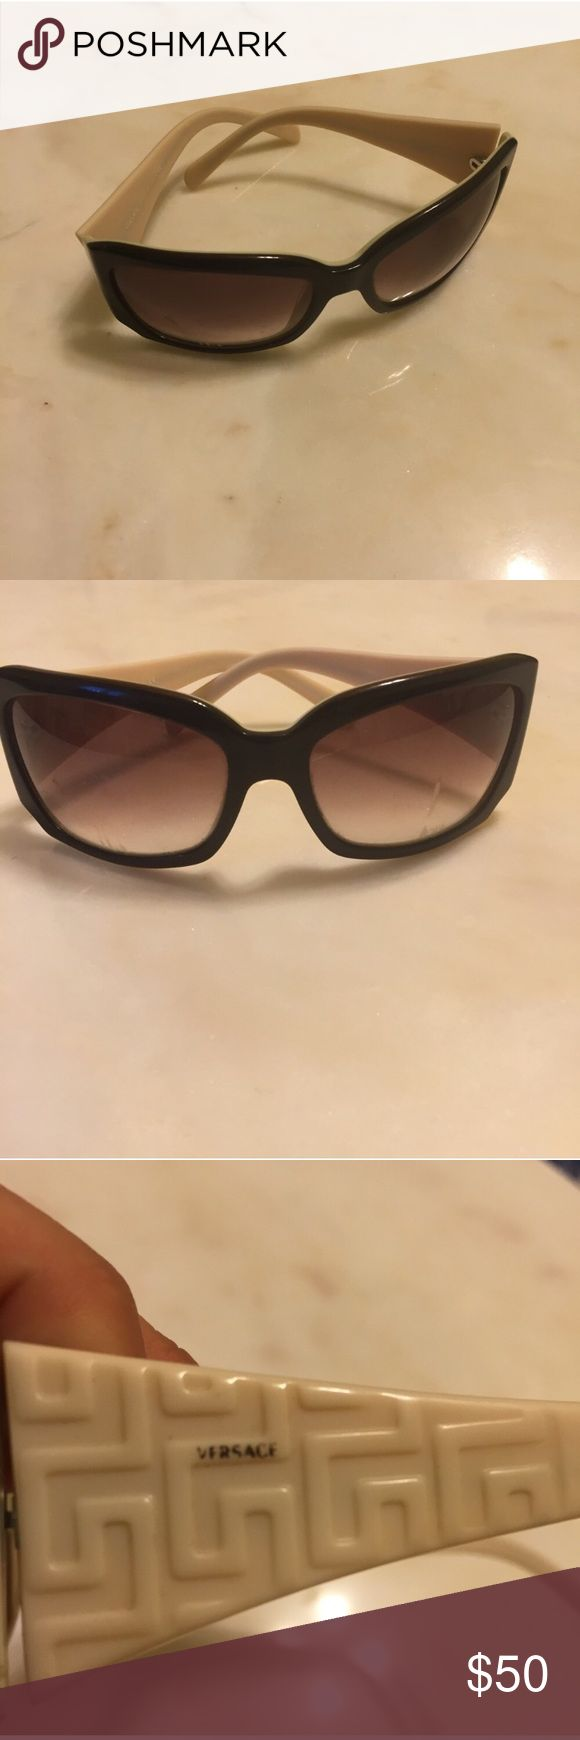 Versace Sunglasses Brand: Versace  Condition: Great condition, but doesn't come with case (lost it lol) Size: Sunglasses size Extra Details: Versace, Versace Medusa head on me like I'm 'Luminati I know that you like it Versace, Versace I love it, Versace the top of my Audi Versace Accessories Sunglasses